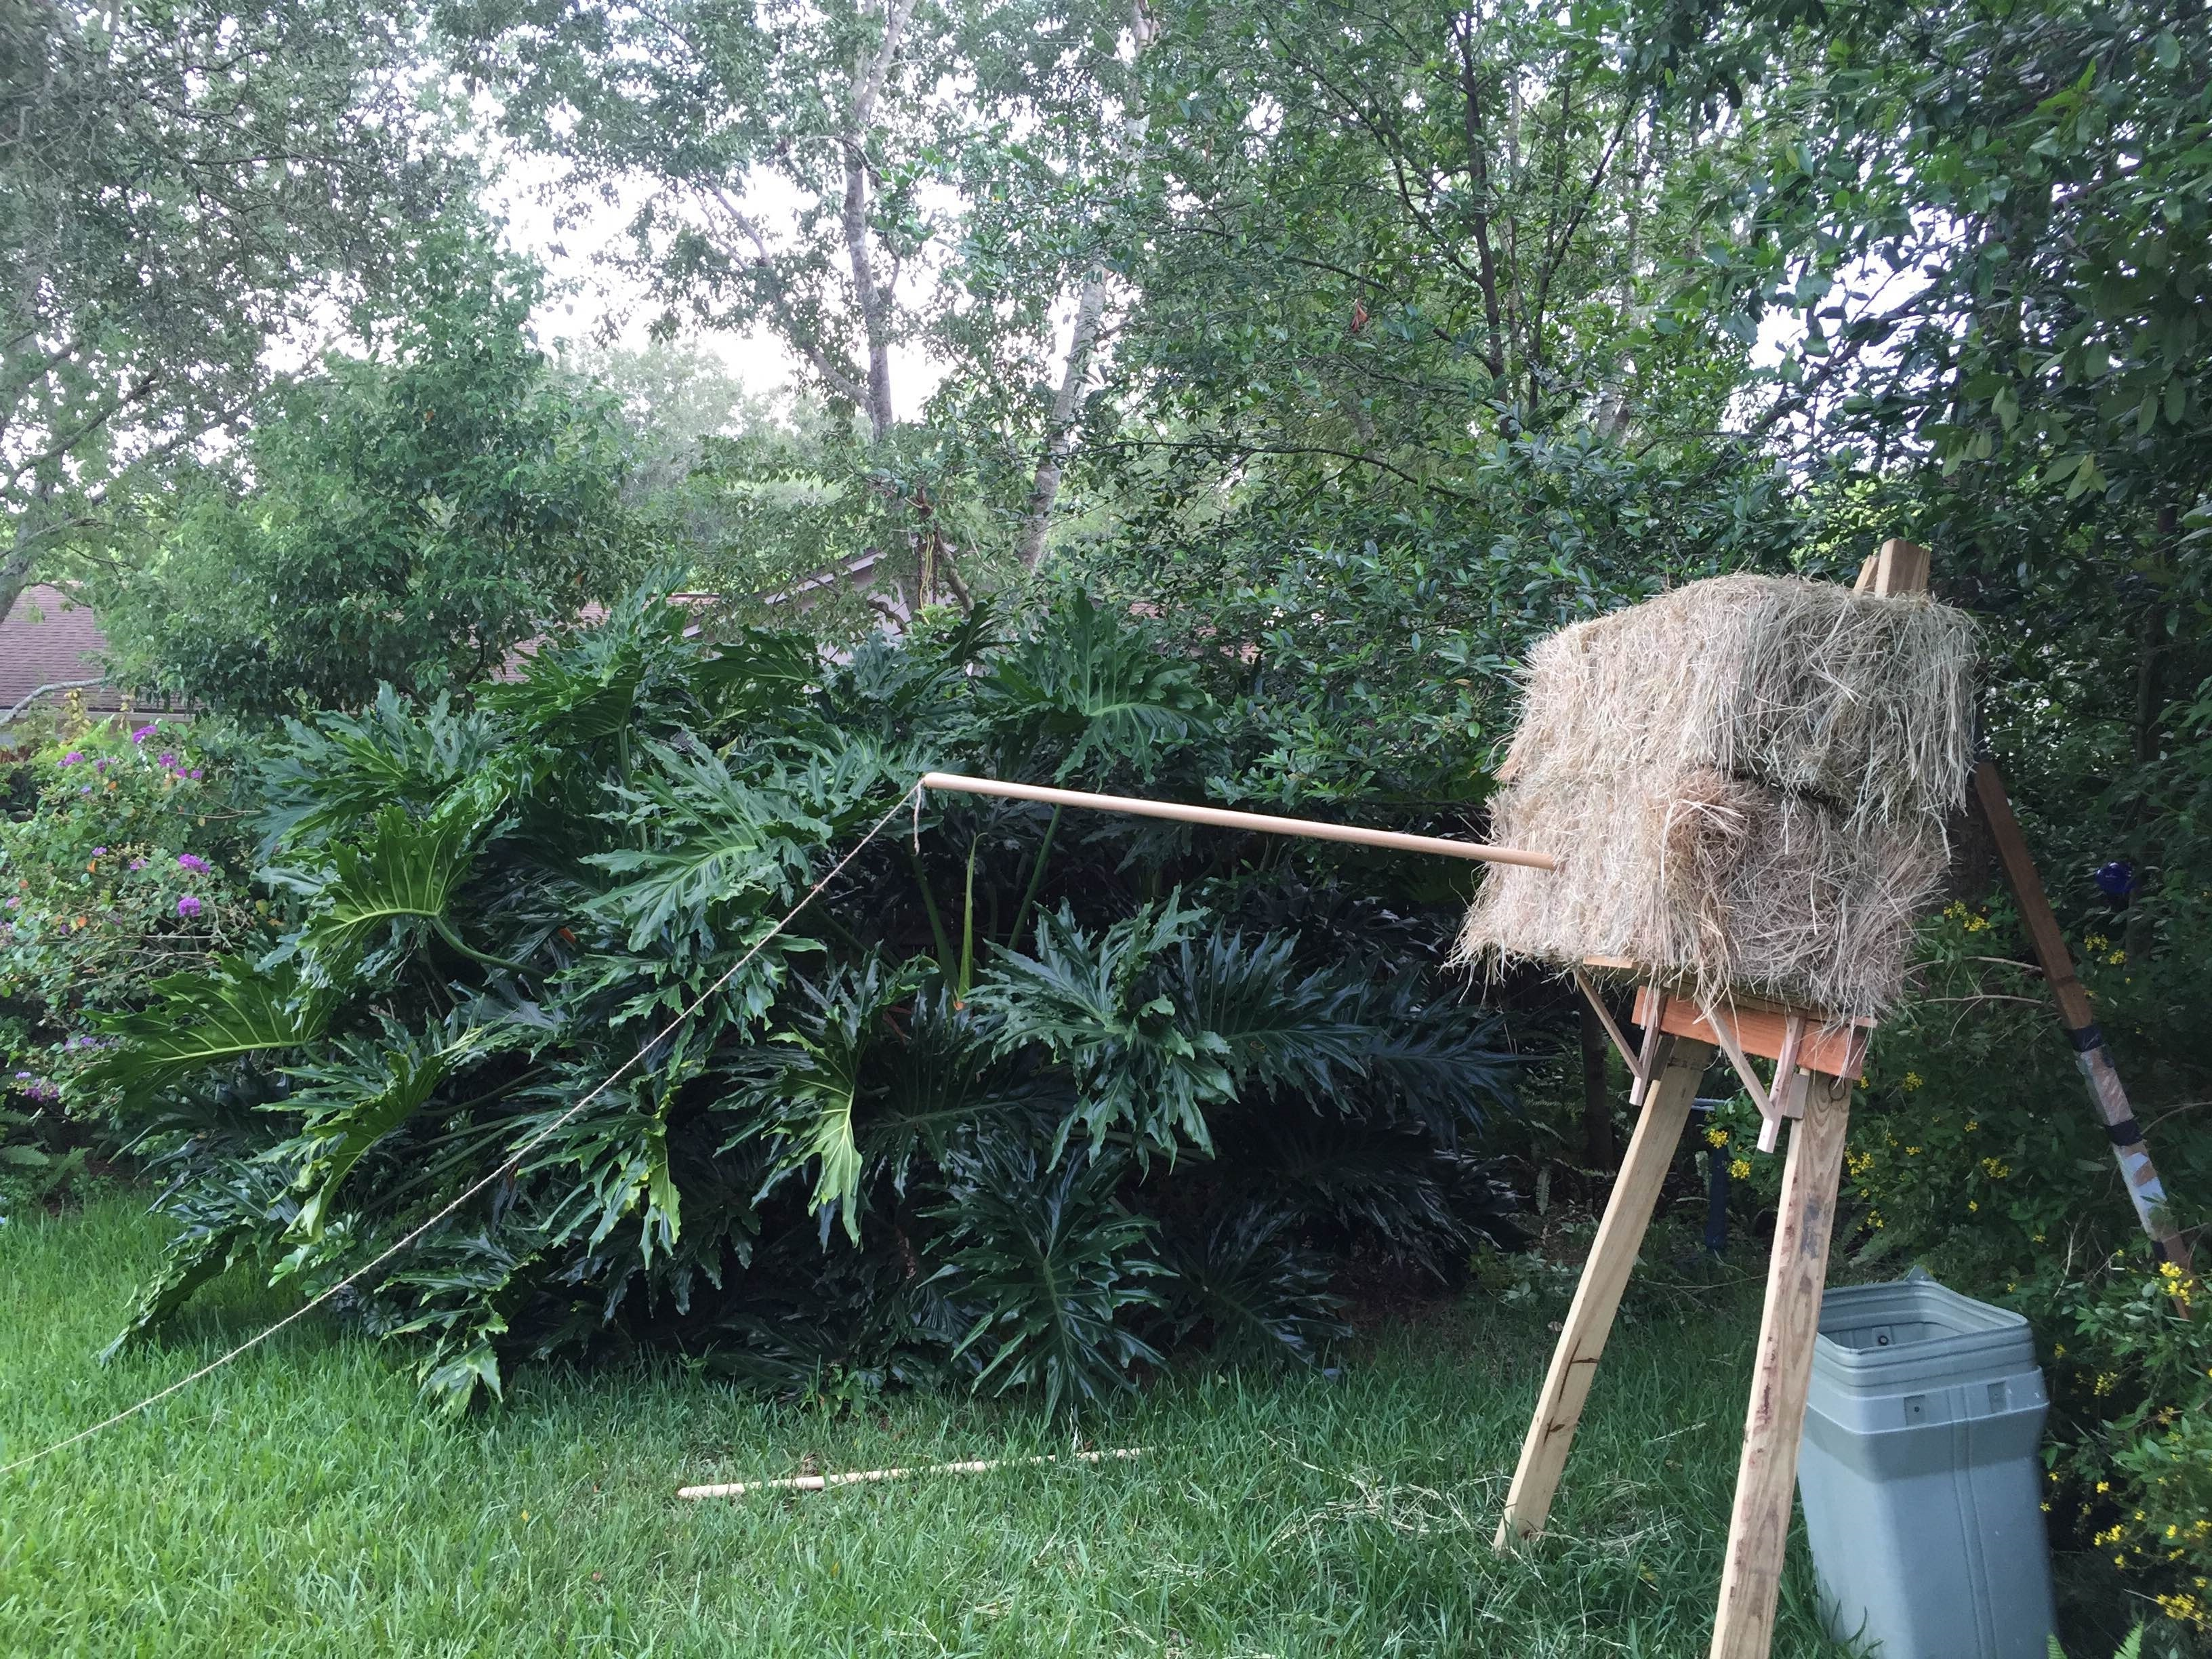 The backyard spear throw. This cost about $25 to make, and I never miss spear throws now!